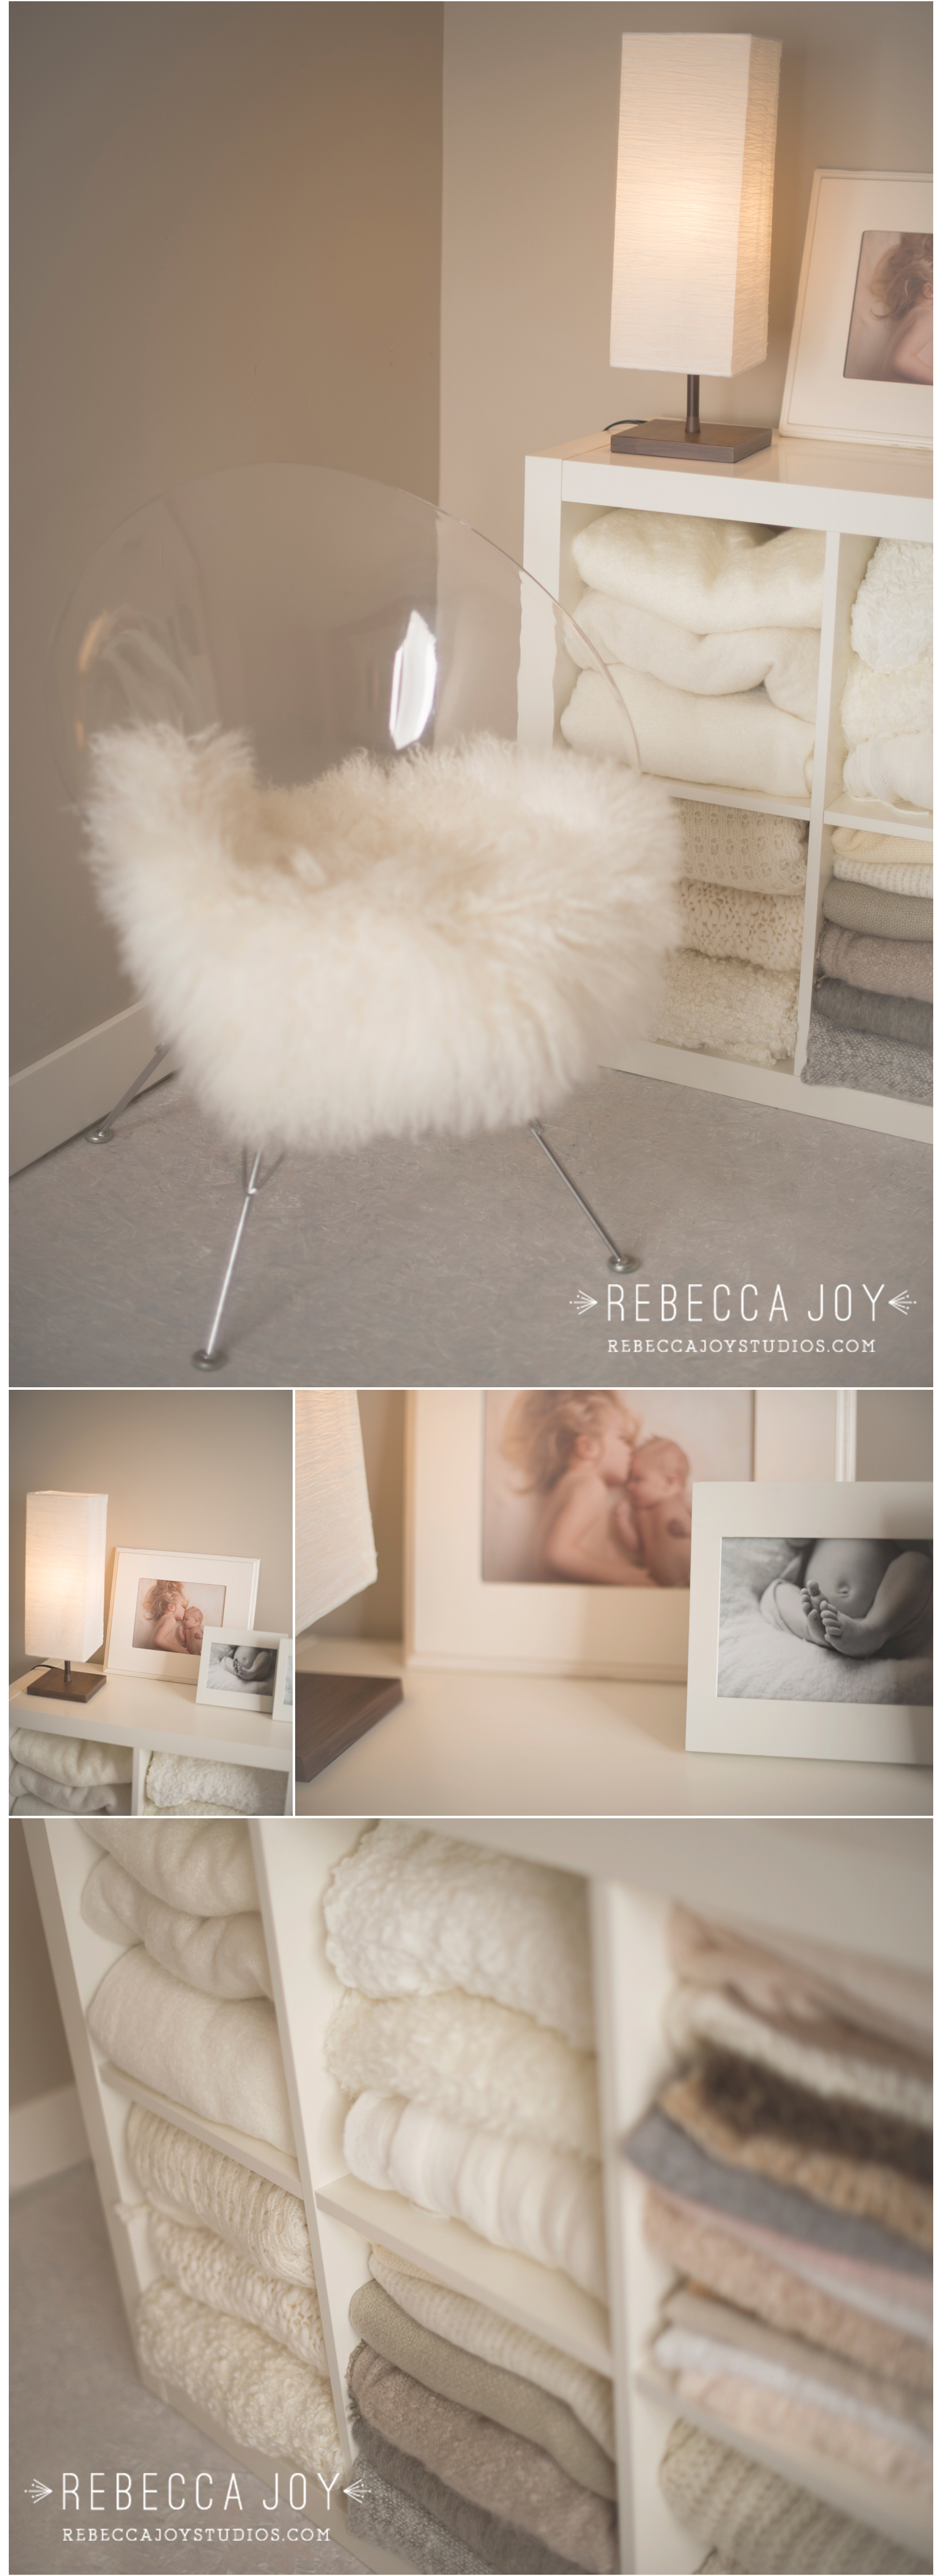 Joy Studio Design Gallery Best Design: The Studio » Rebecca Joy Studios